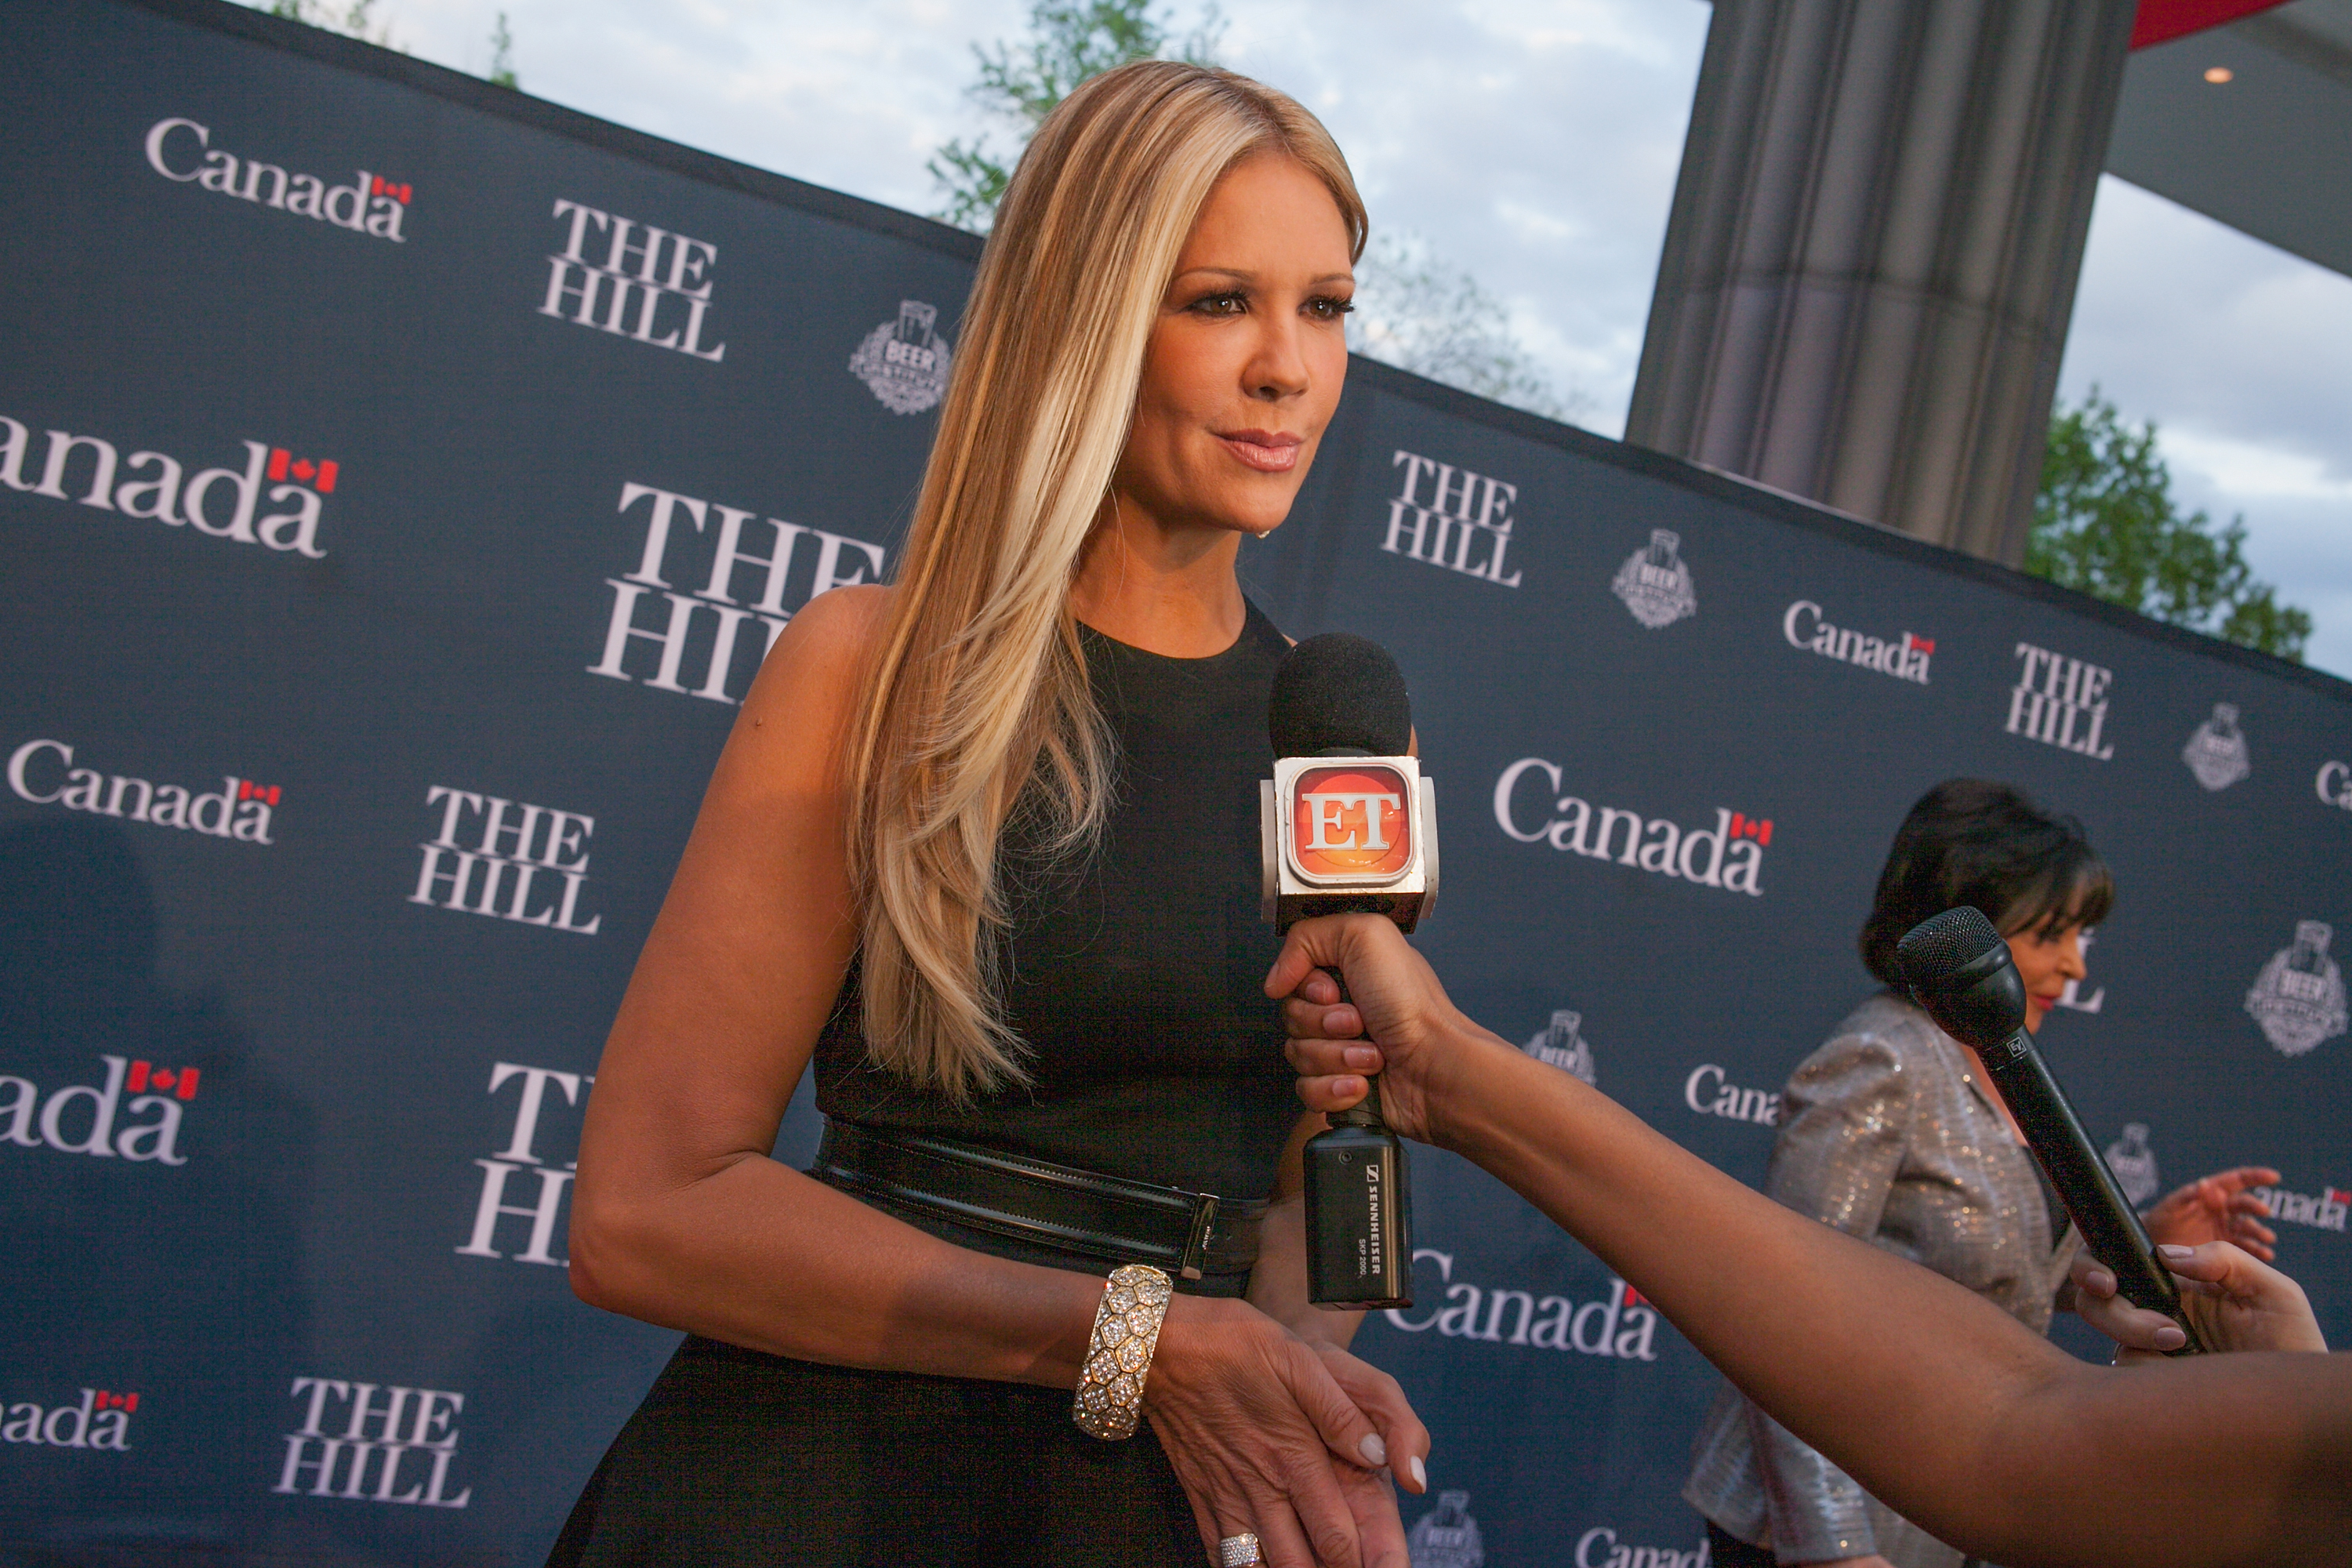 The Hill And Entertainment Tonight Celebrate The 100th White House Correspondents' Association Dinner Weekend